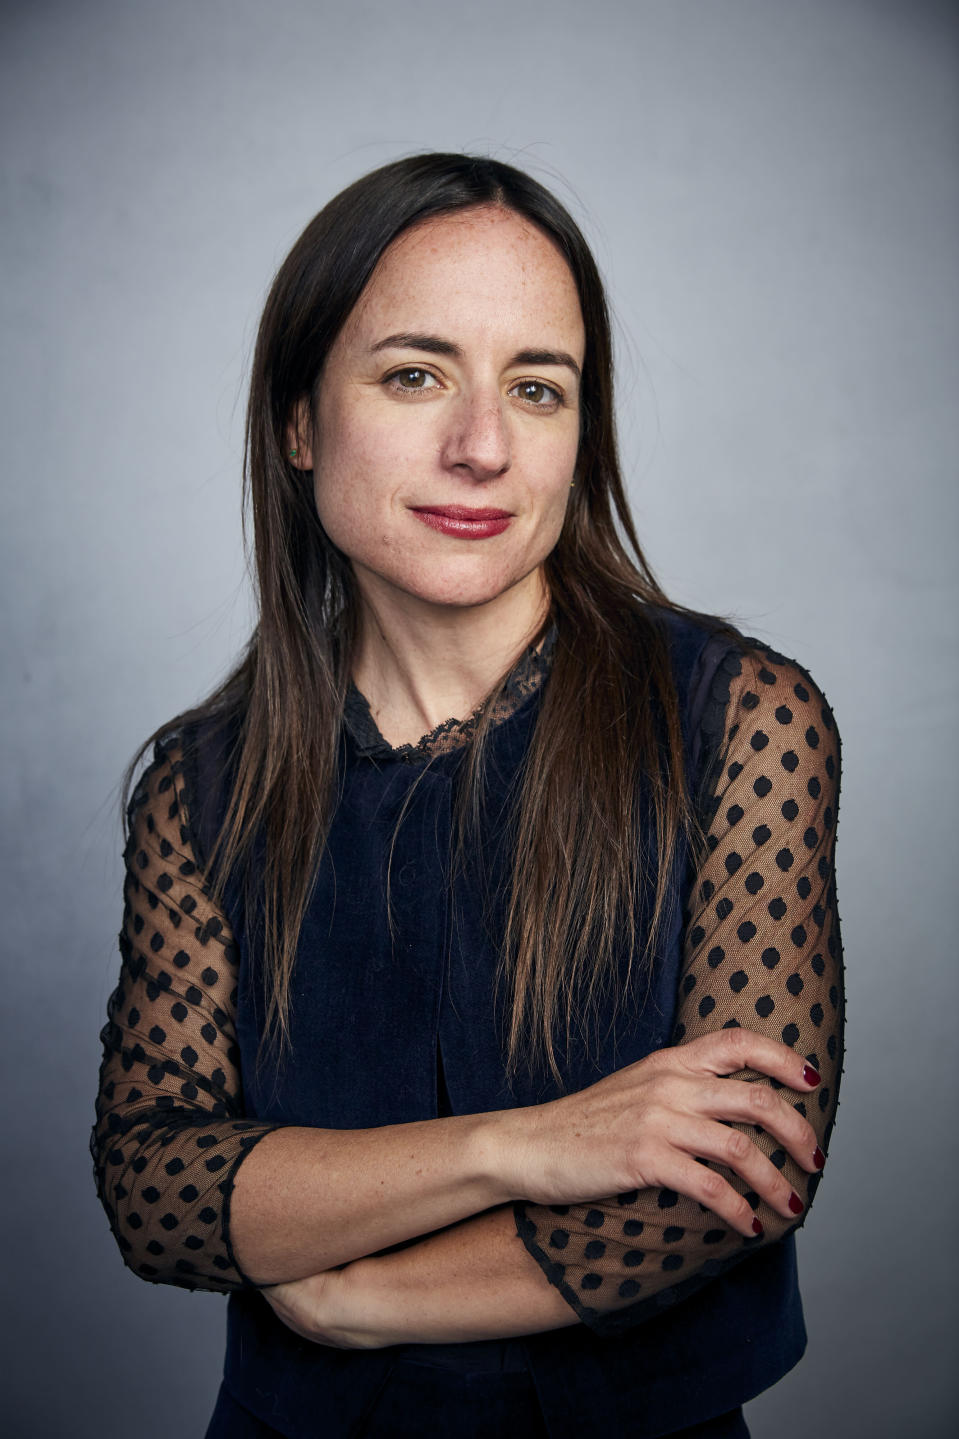 """FILE - Writer/director Maite Alberdi poses for a portrait to promote the film """"The Mole Agent"""" during the Sundance Film Festival on Jan. 25, 2020, in Park City, Utah. (Photo by Taylor Jewell/Invision/AP, File)"""